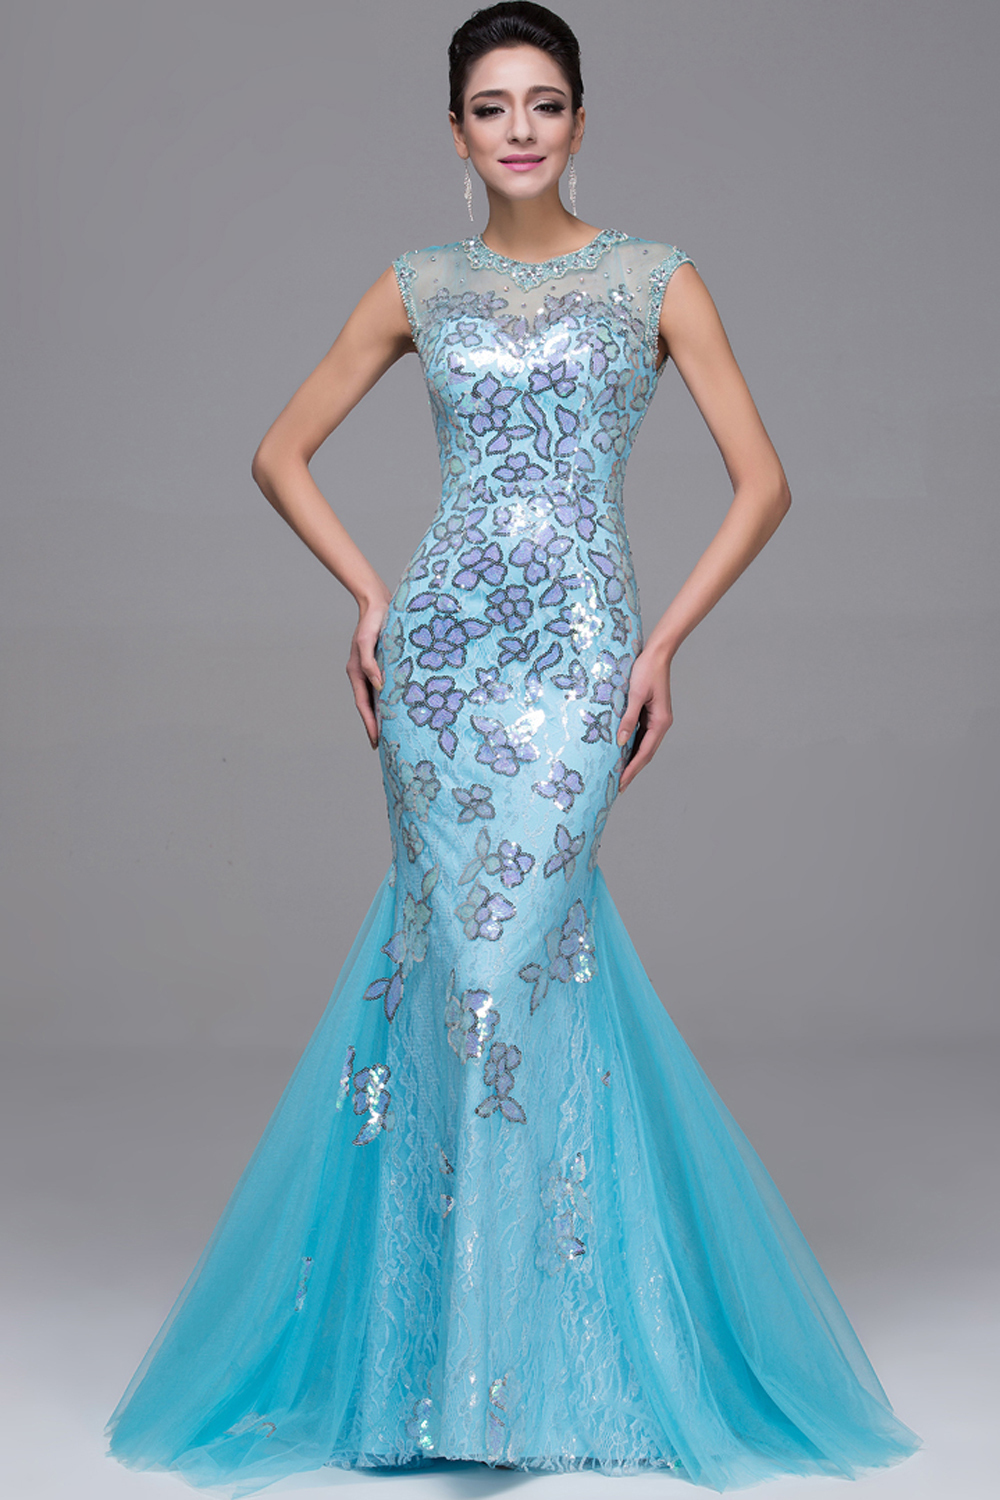 Sheath/Column Jewel Neck Floor Length Tulle Evening Dress with Sequins